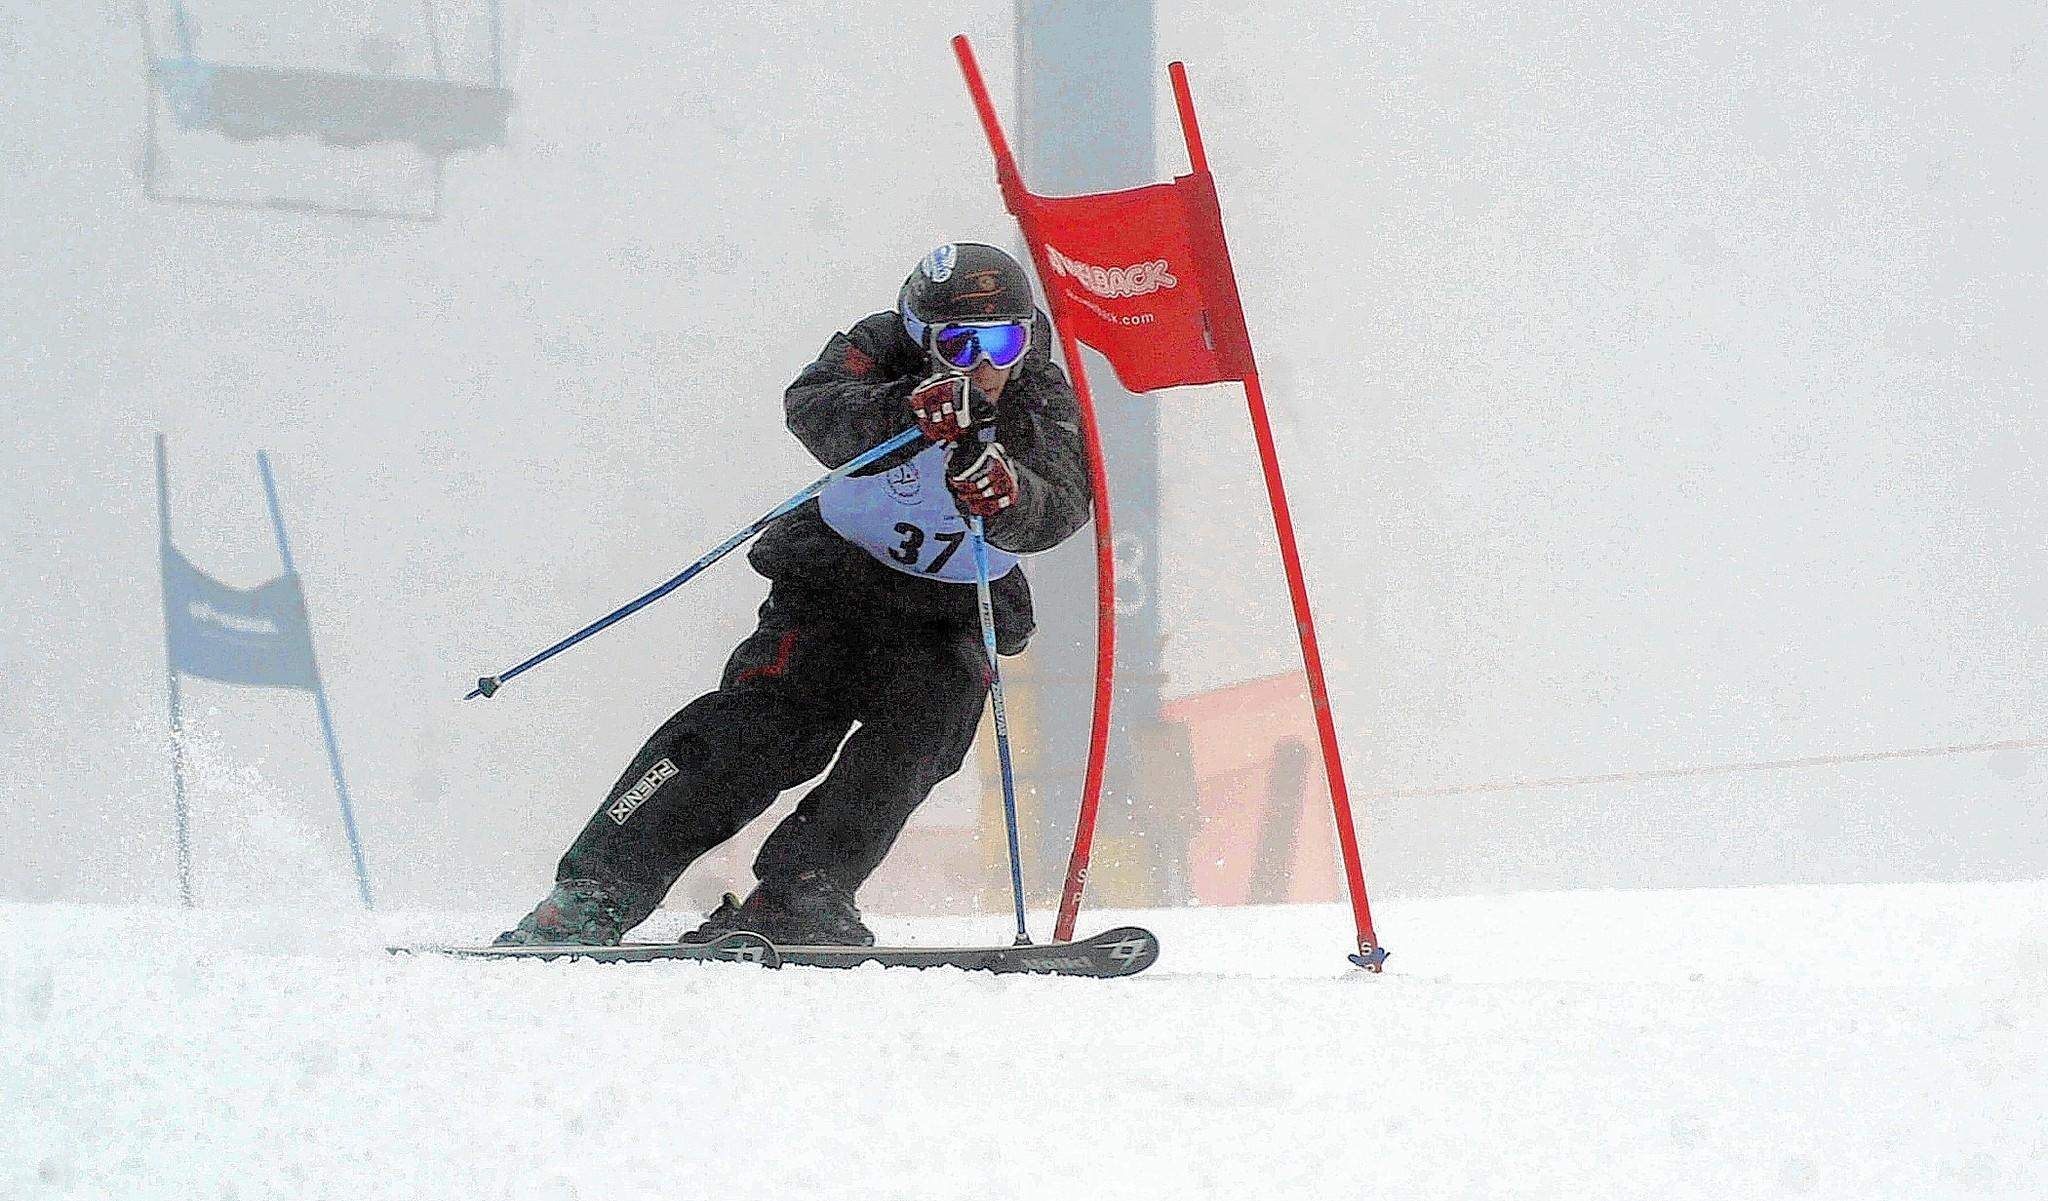 Tyler Carter of Topton races the Giant Slalom course at Camelback Mountain Resort in Tannersville.